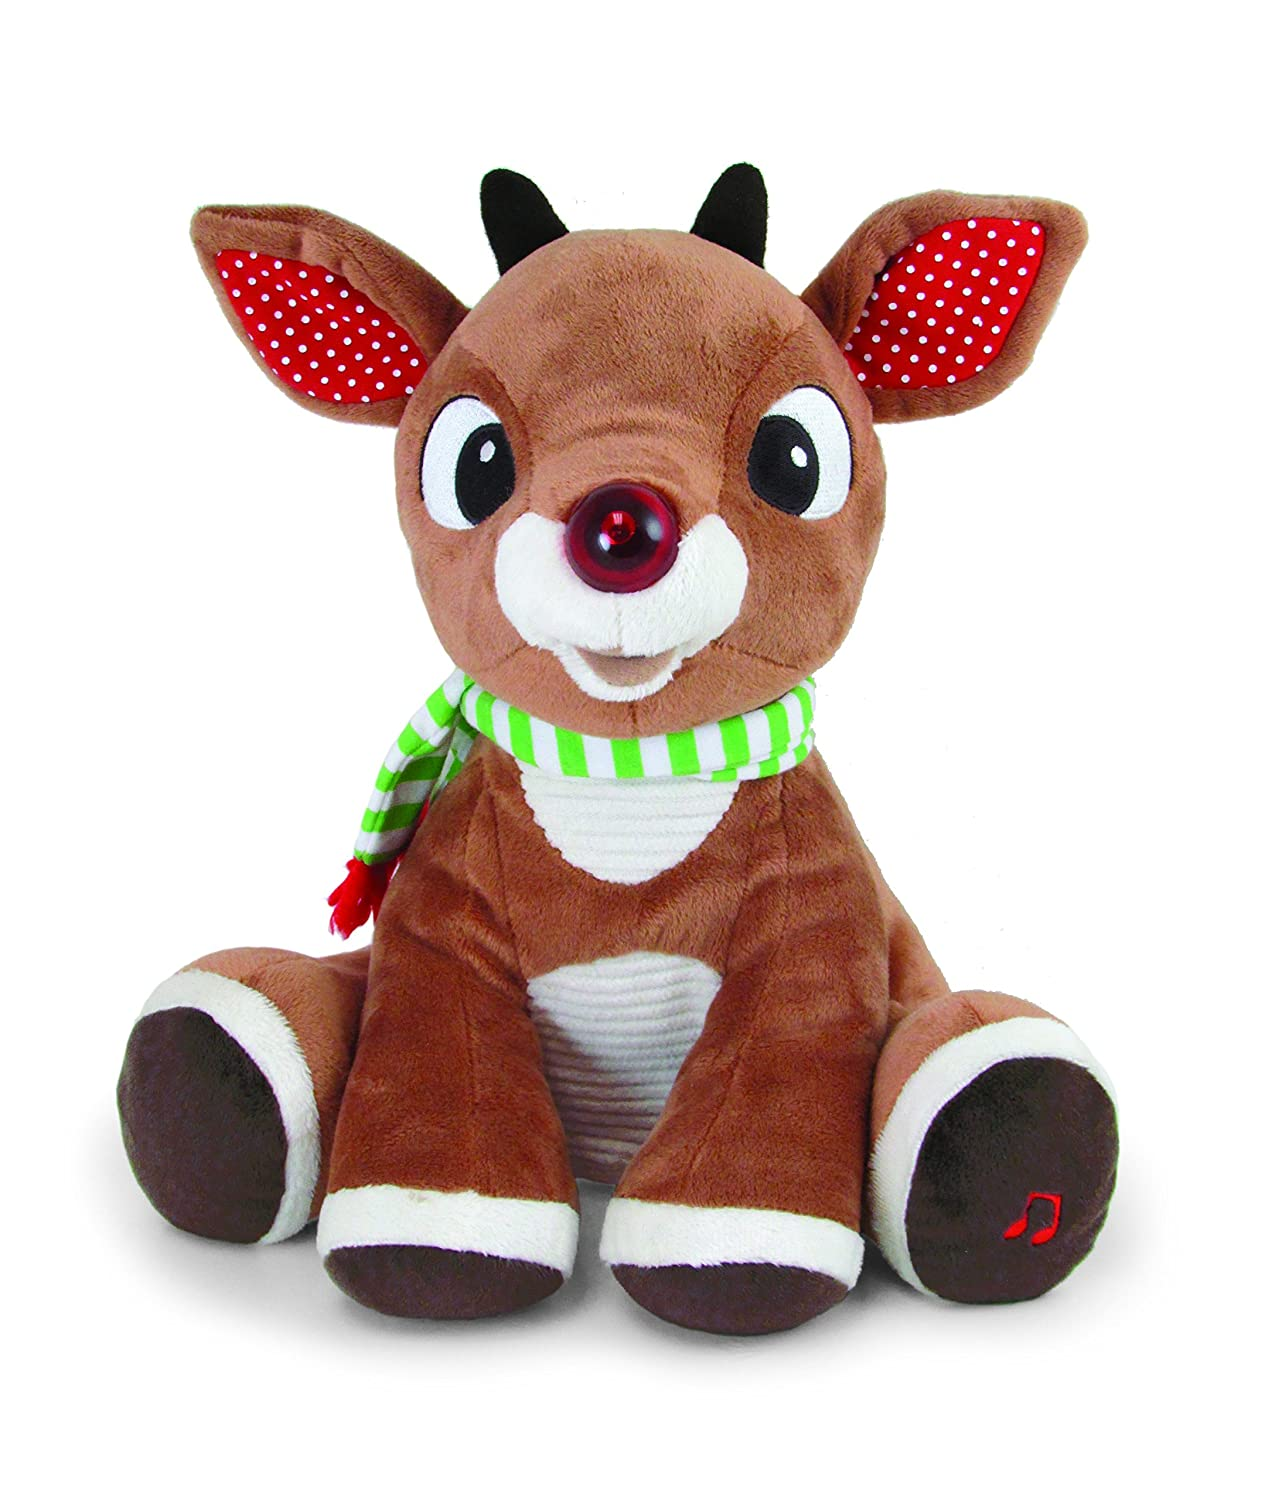 Rudolph Light-Up Plush with Music and Lights HearthSong 730591